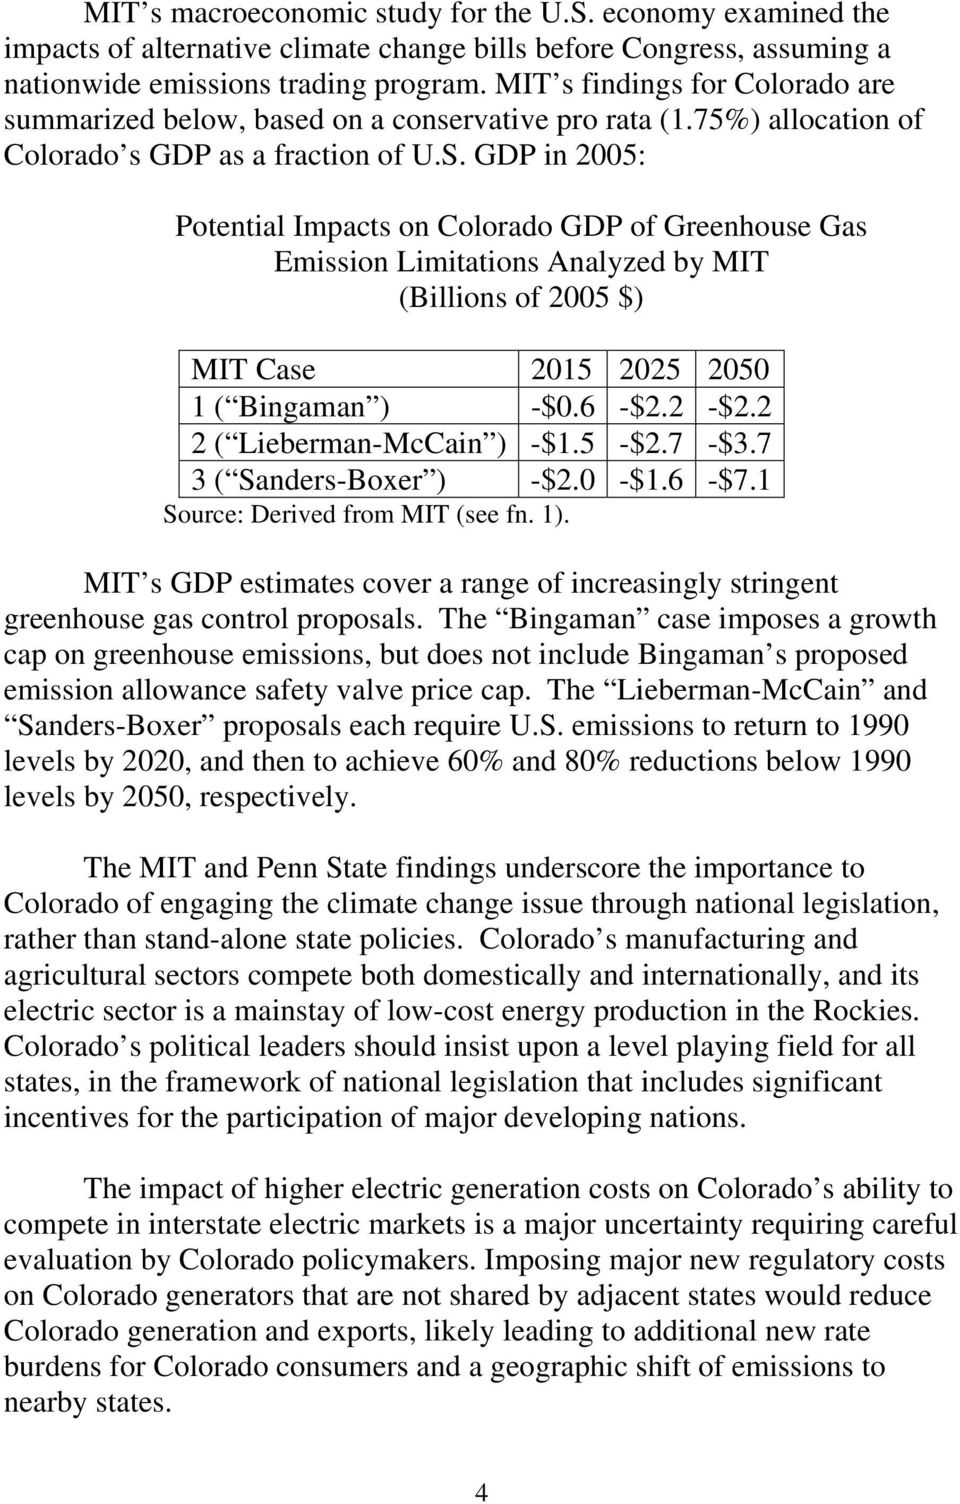 GDP in 2005: Potential Impacts on Colorado GDP of Greenhouse Gas Emission Limitations Analyzed by MIT (Billions of 2005 $) MIT Case 2015 2025 2050 1 ( Bingaman ) -$0.6 -$2.2 -$2.